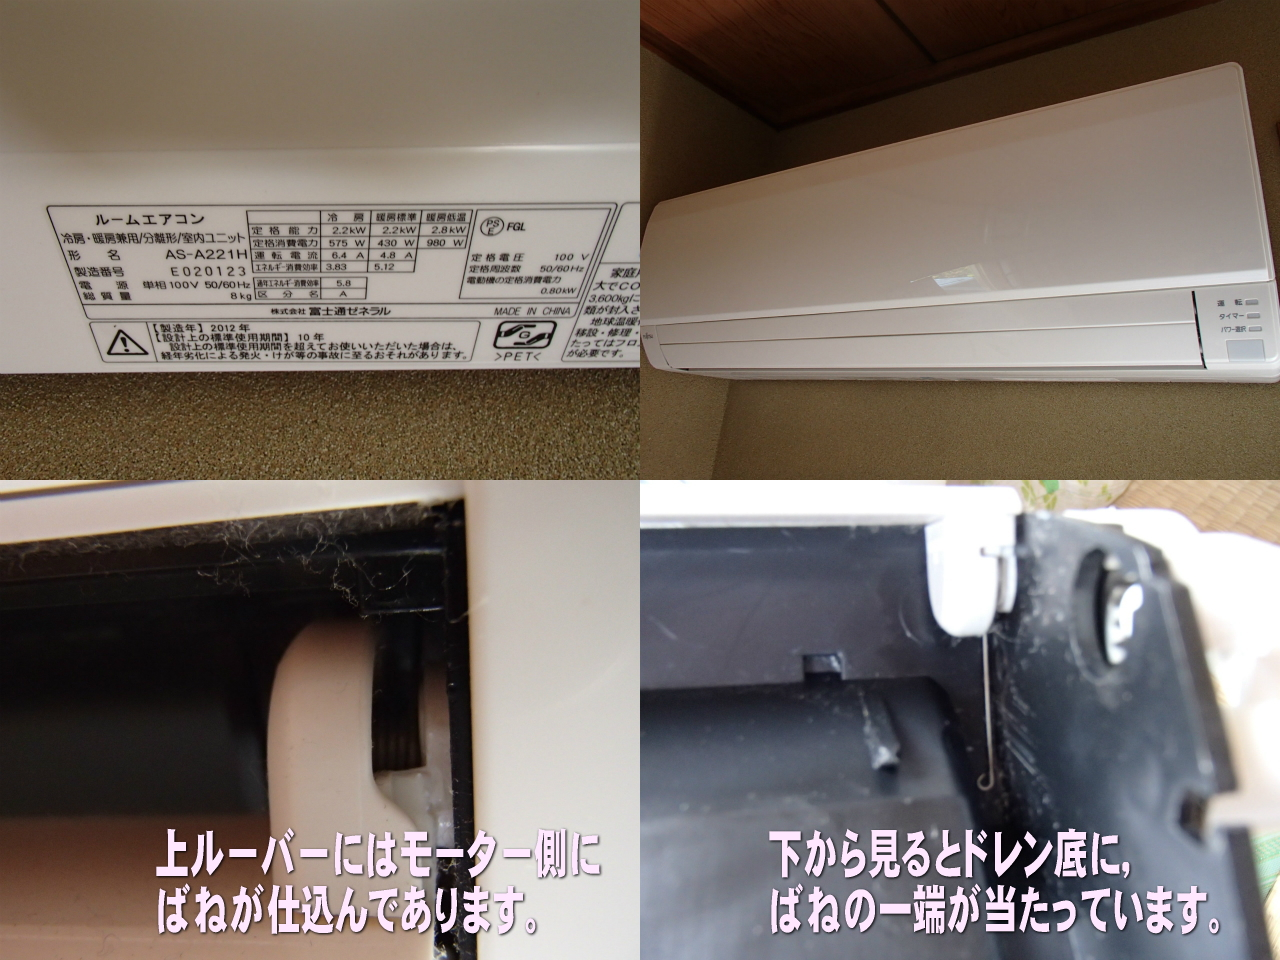 http://ajras.net/images/120901-aircon1.jpg